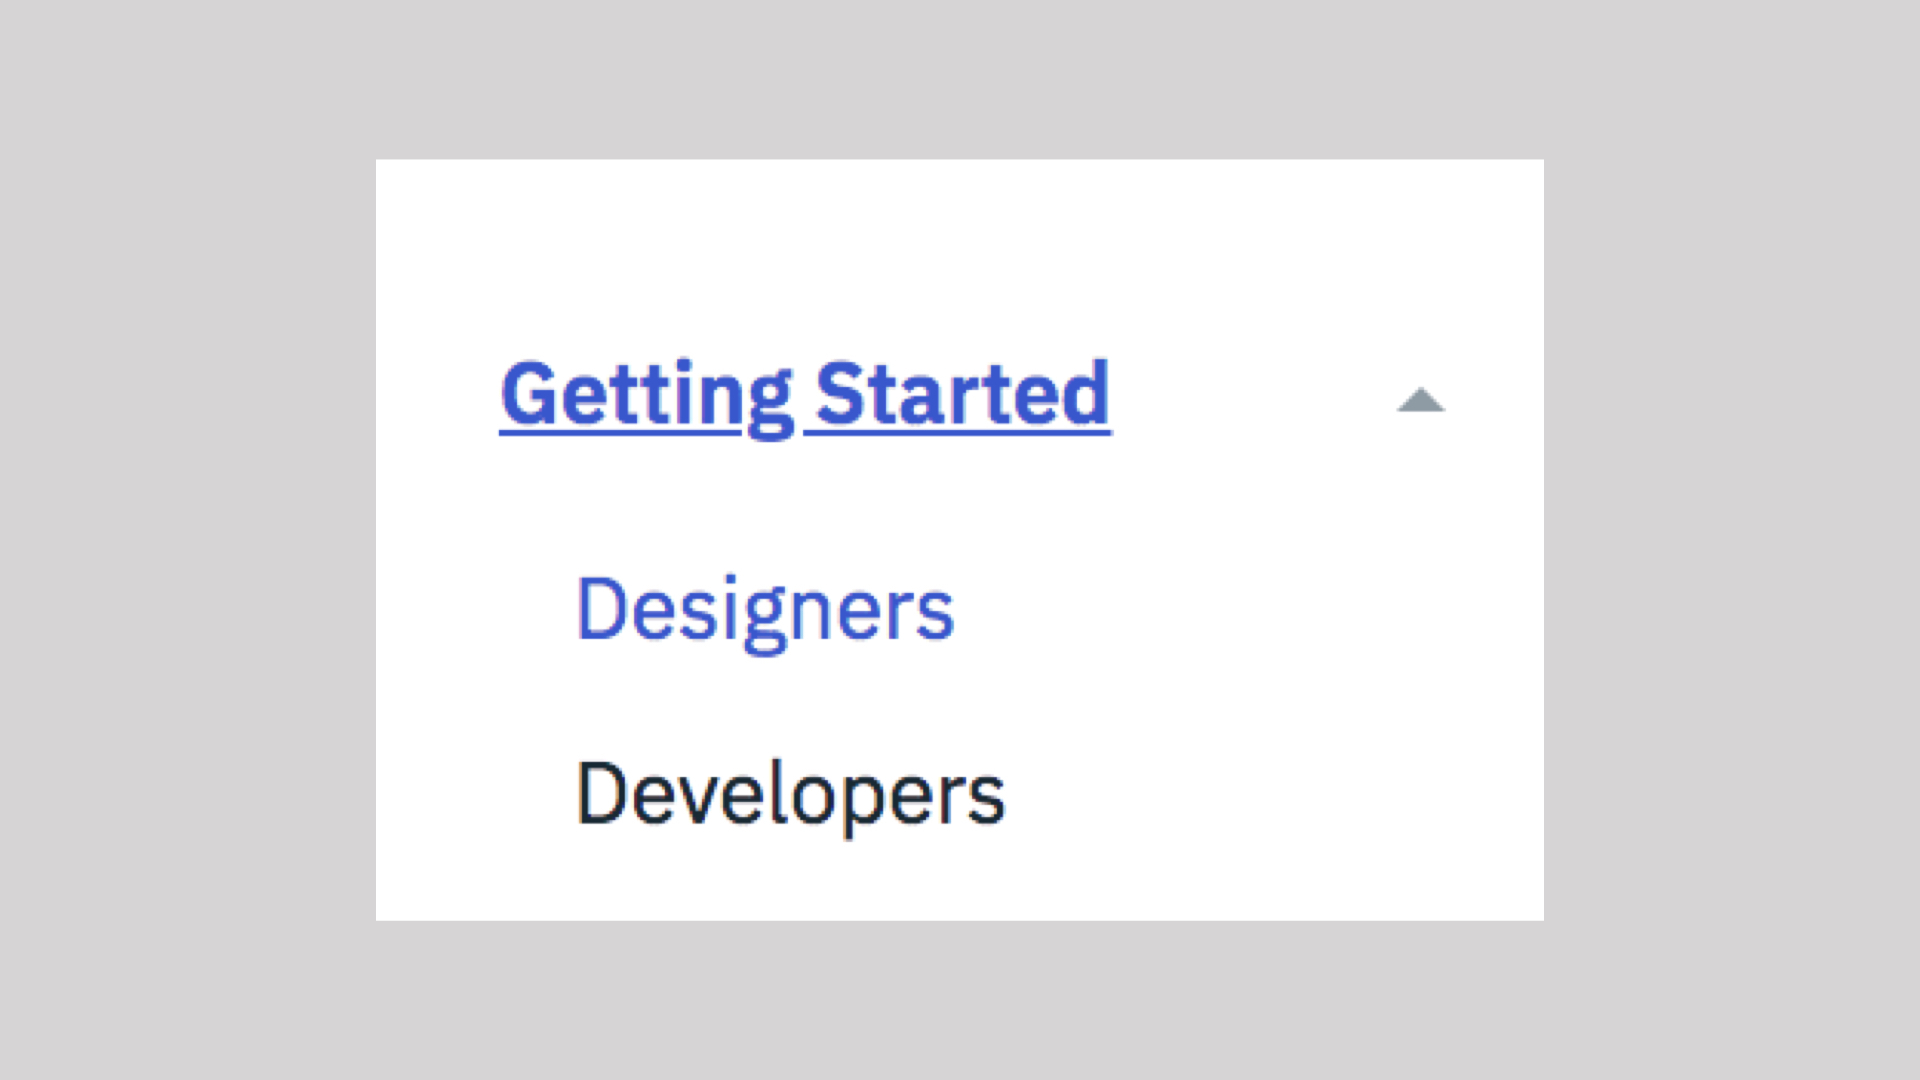 A dropdown down menu with two options: designers or developers.